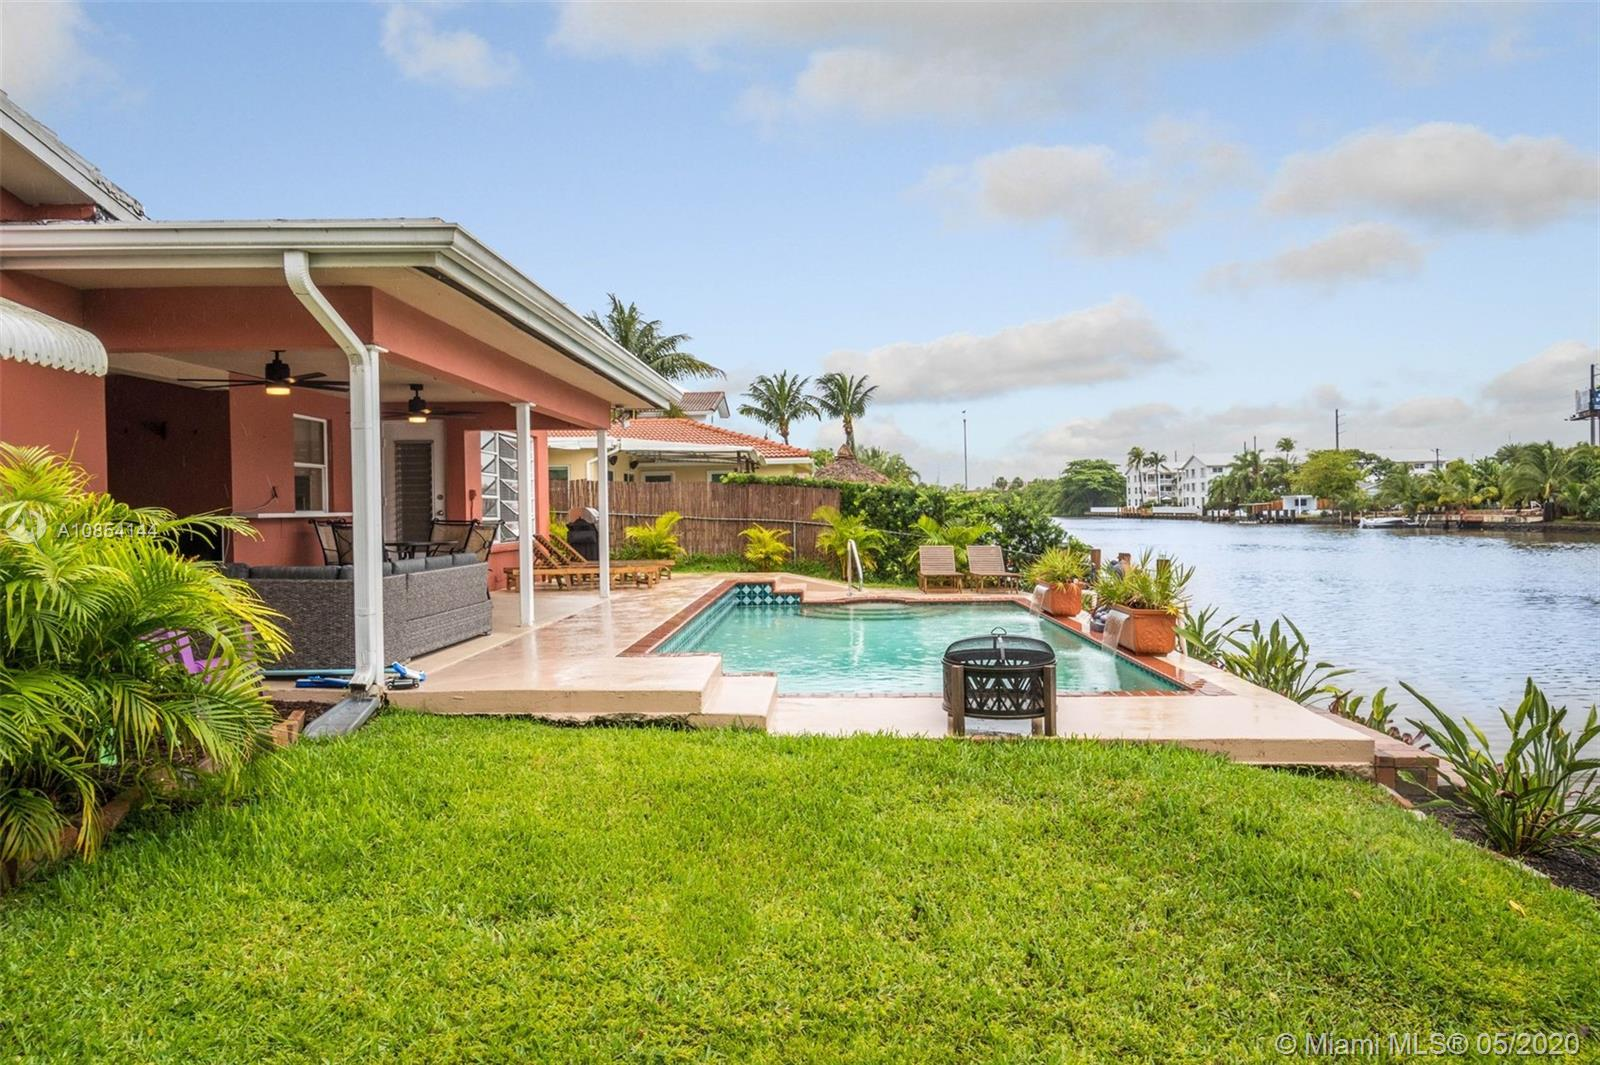 Located on Wilton Manors' ONLY private gated island, this mid century modern home sits on 80' of waterfront overlooking the 200' wide Middle River, w/ dockage for a small boat, glistening pool & large covered patio area. Ideal northern exposure w/ constant backyard breeze. Waterfront, pool & backyard views from Family Rm, Kitchen, Dining Rm & Master. Both bathrooms recently updated; Master w/ marble vanity & flooring, & guest bath w/ subway tile & dual vanity. Permitted repairs completed, including replacing all underground plumbing, sewer & water lines, & updated electrical panels. 2012 AC. 1 car garage, extra wide paver drive. Bright, open concept in amazing location, minutes to i95, Mills Pond Park, & zoned A Rated Wilton Manors Elementary. Virtual Tour https://bit.ly/2TbPFDx